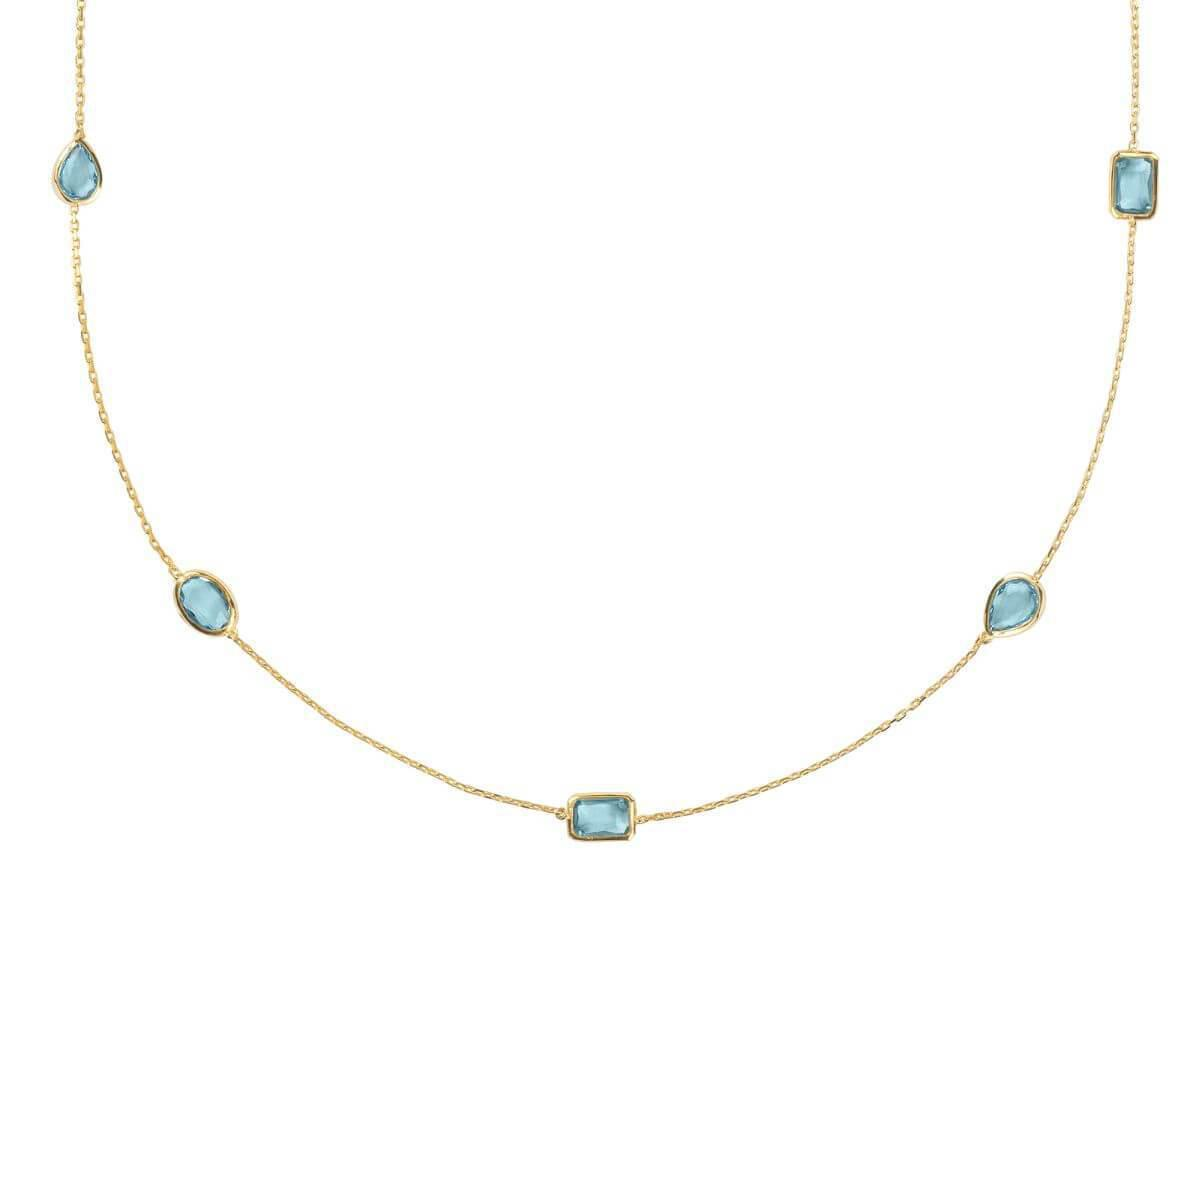 Latelita London Verona Gemstone Strand Necklace Gold Blue Topaz fVrm8